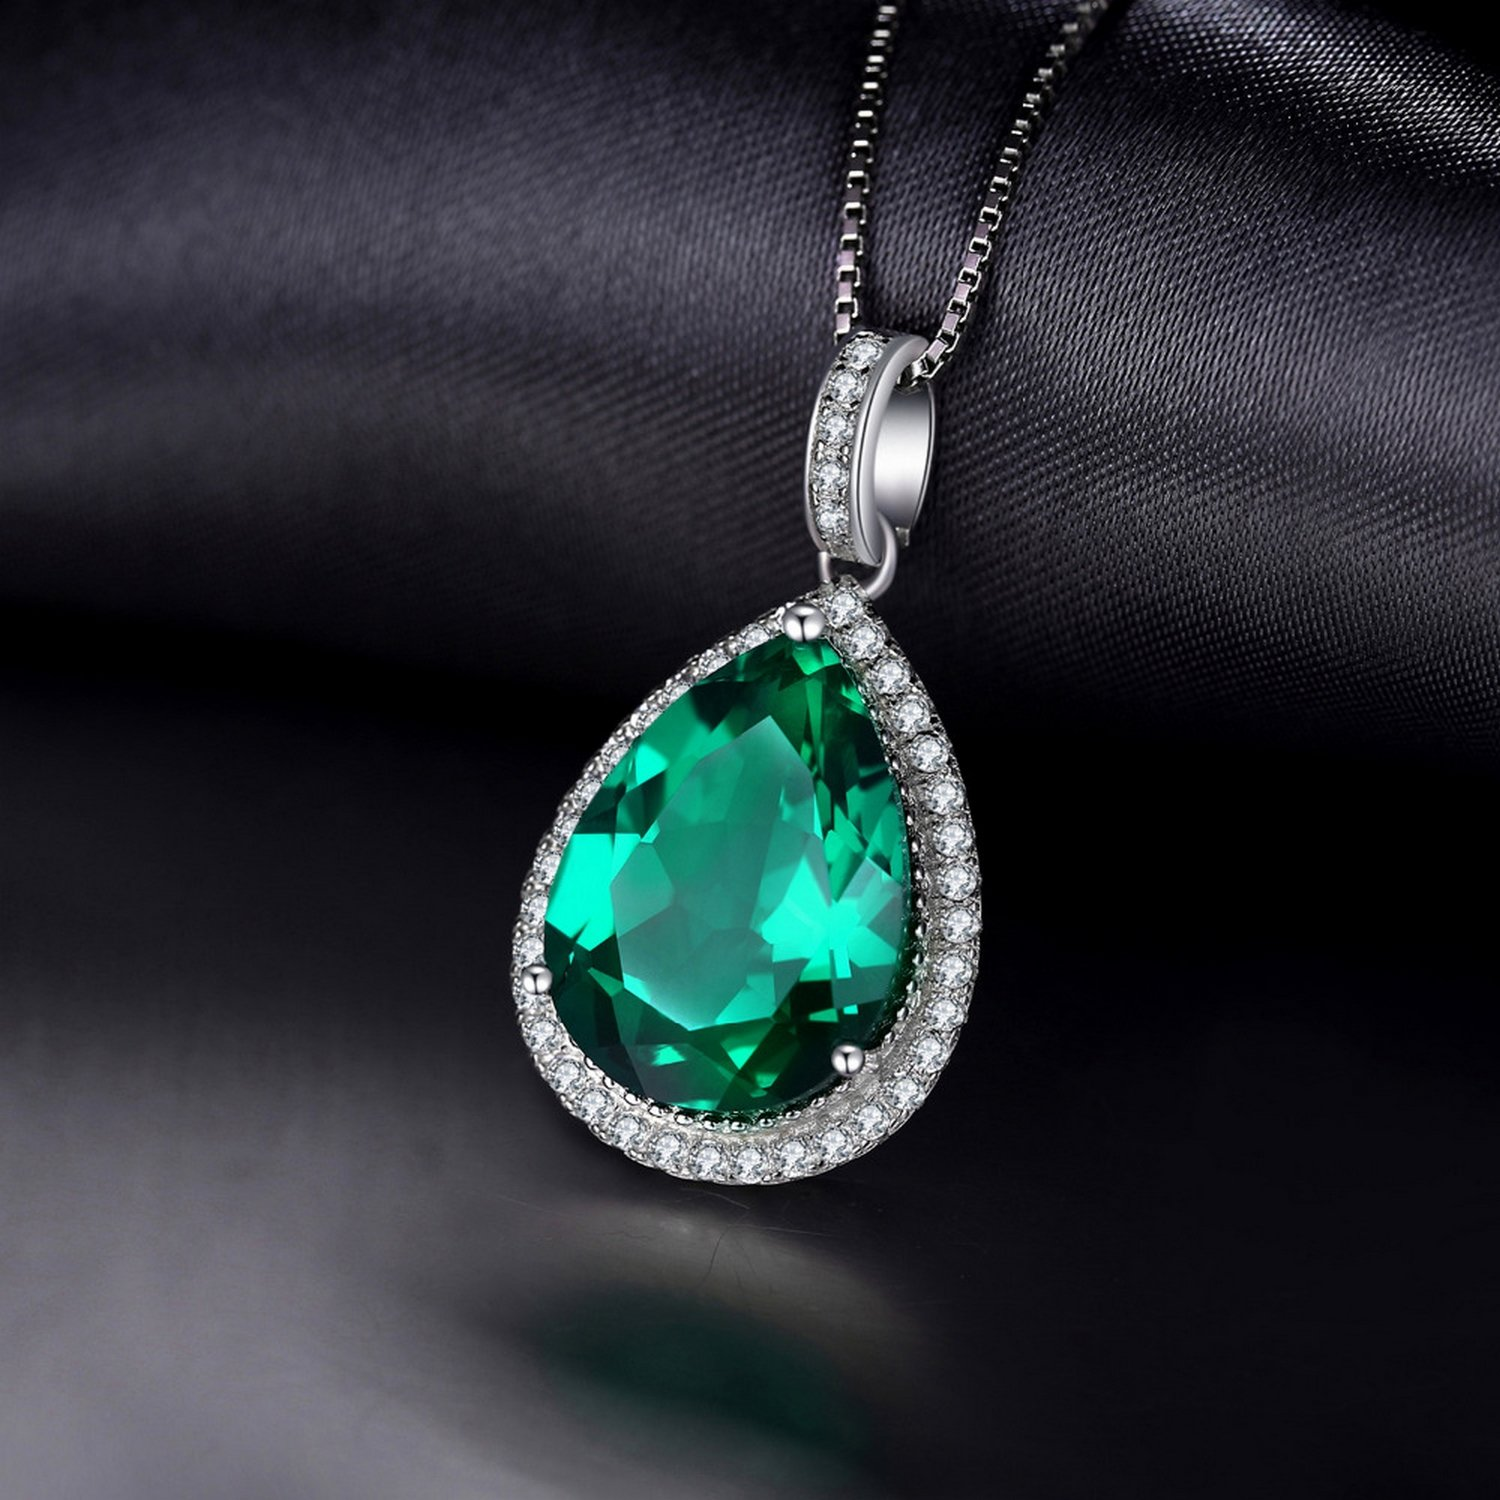 CS-DB Jewelry Silver Luxury Pear Cut 7.4ct Created Green Emerald Chain Charm Pendants Necklaces